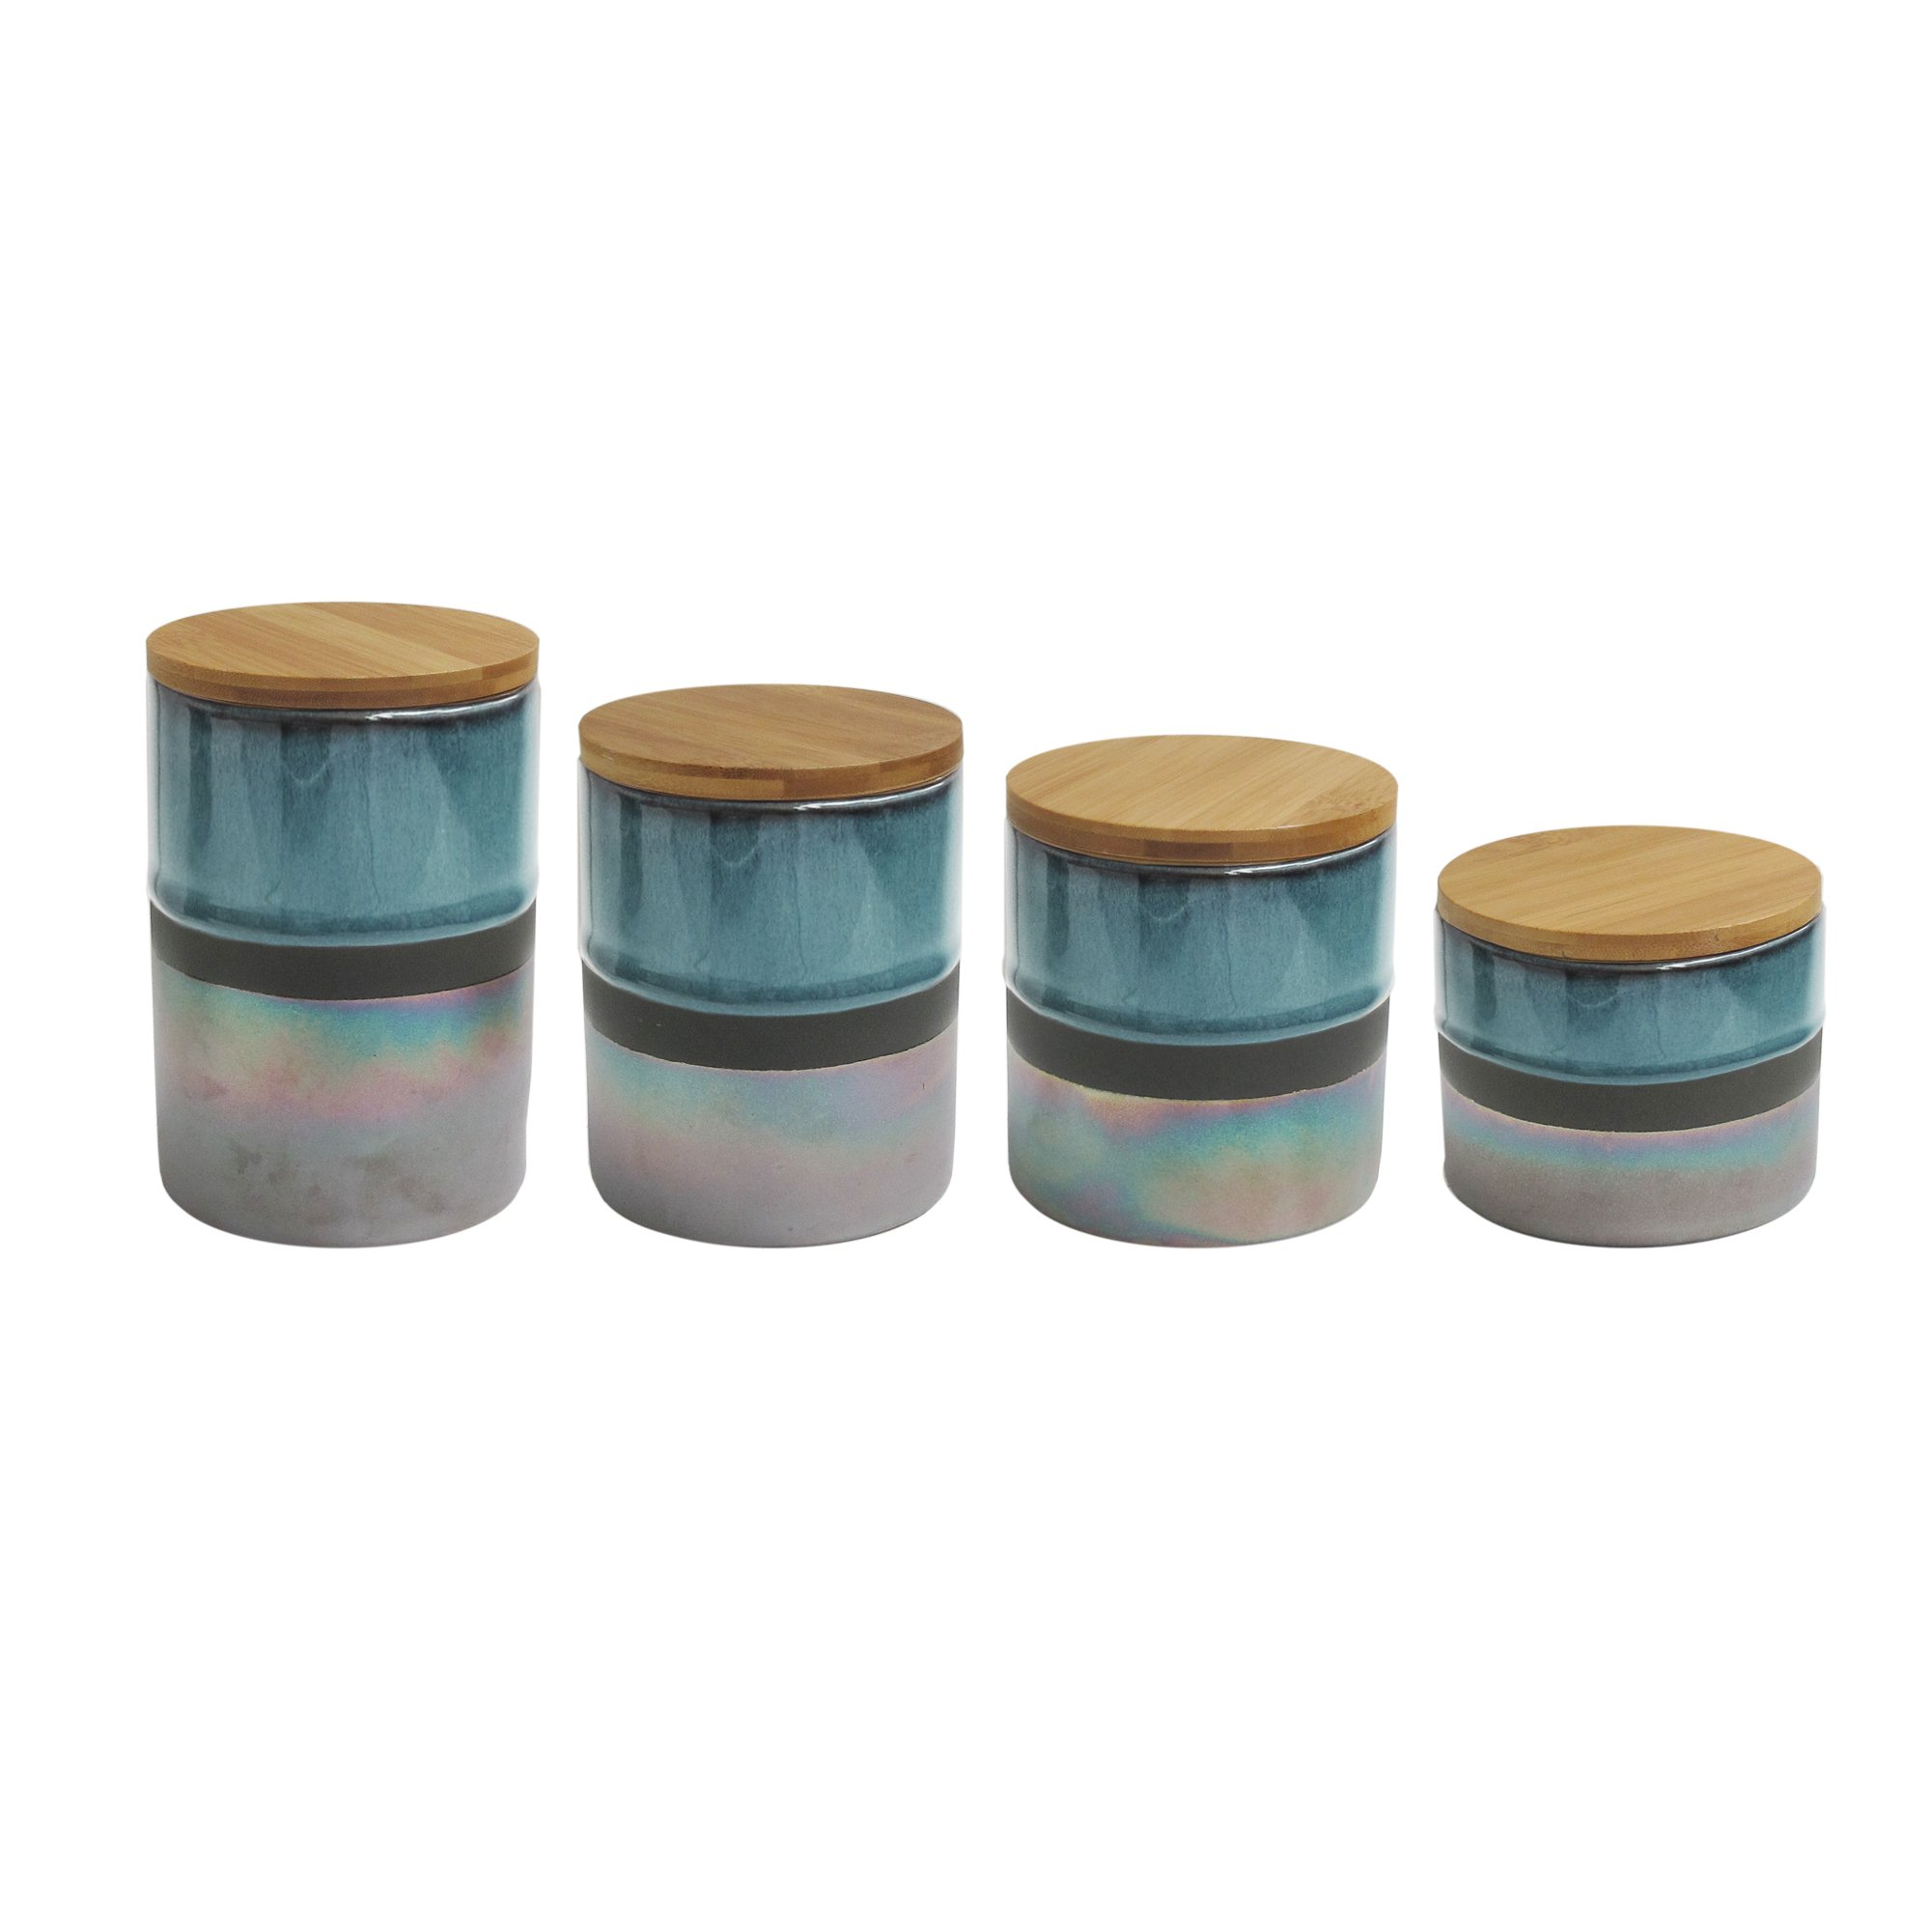 American Atelier 7016-CAN-RB 4 Piece Abingdon Canister Set, 17'' x 4.2'' x 8'', Green/Silver